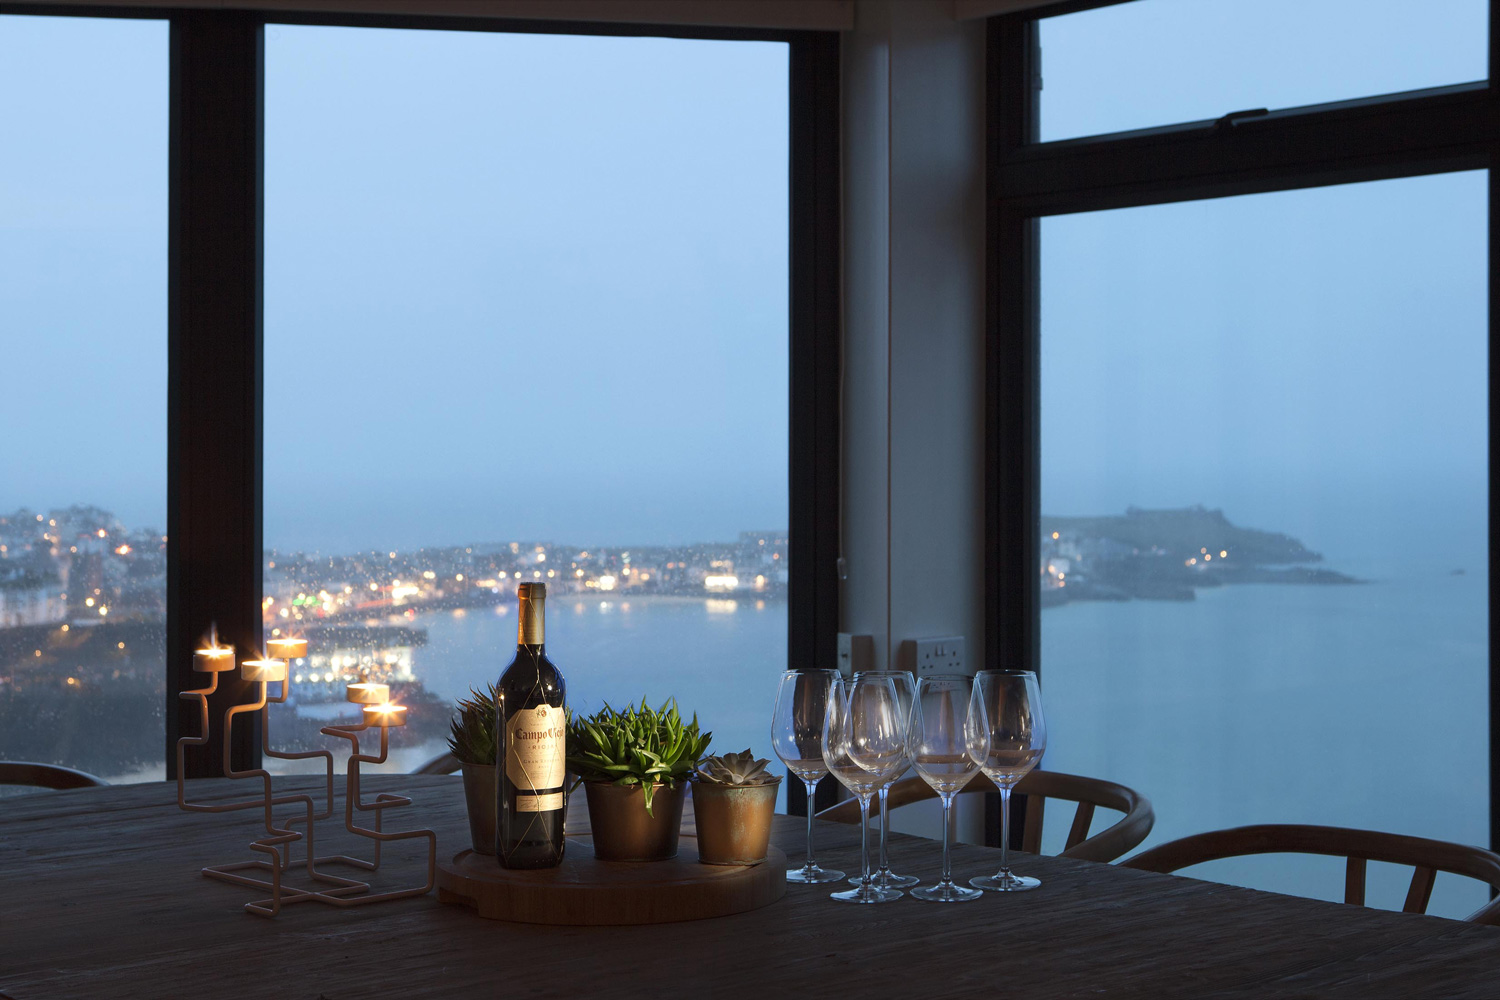 Architecture photographers in Cornwall: Interior shot of a dining table looking out over the ocean.